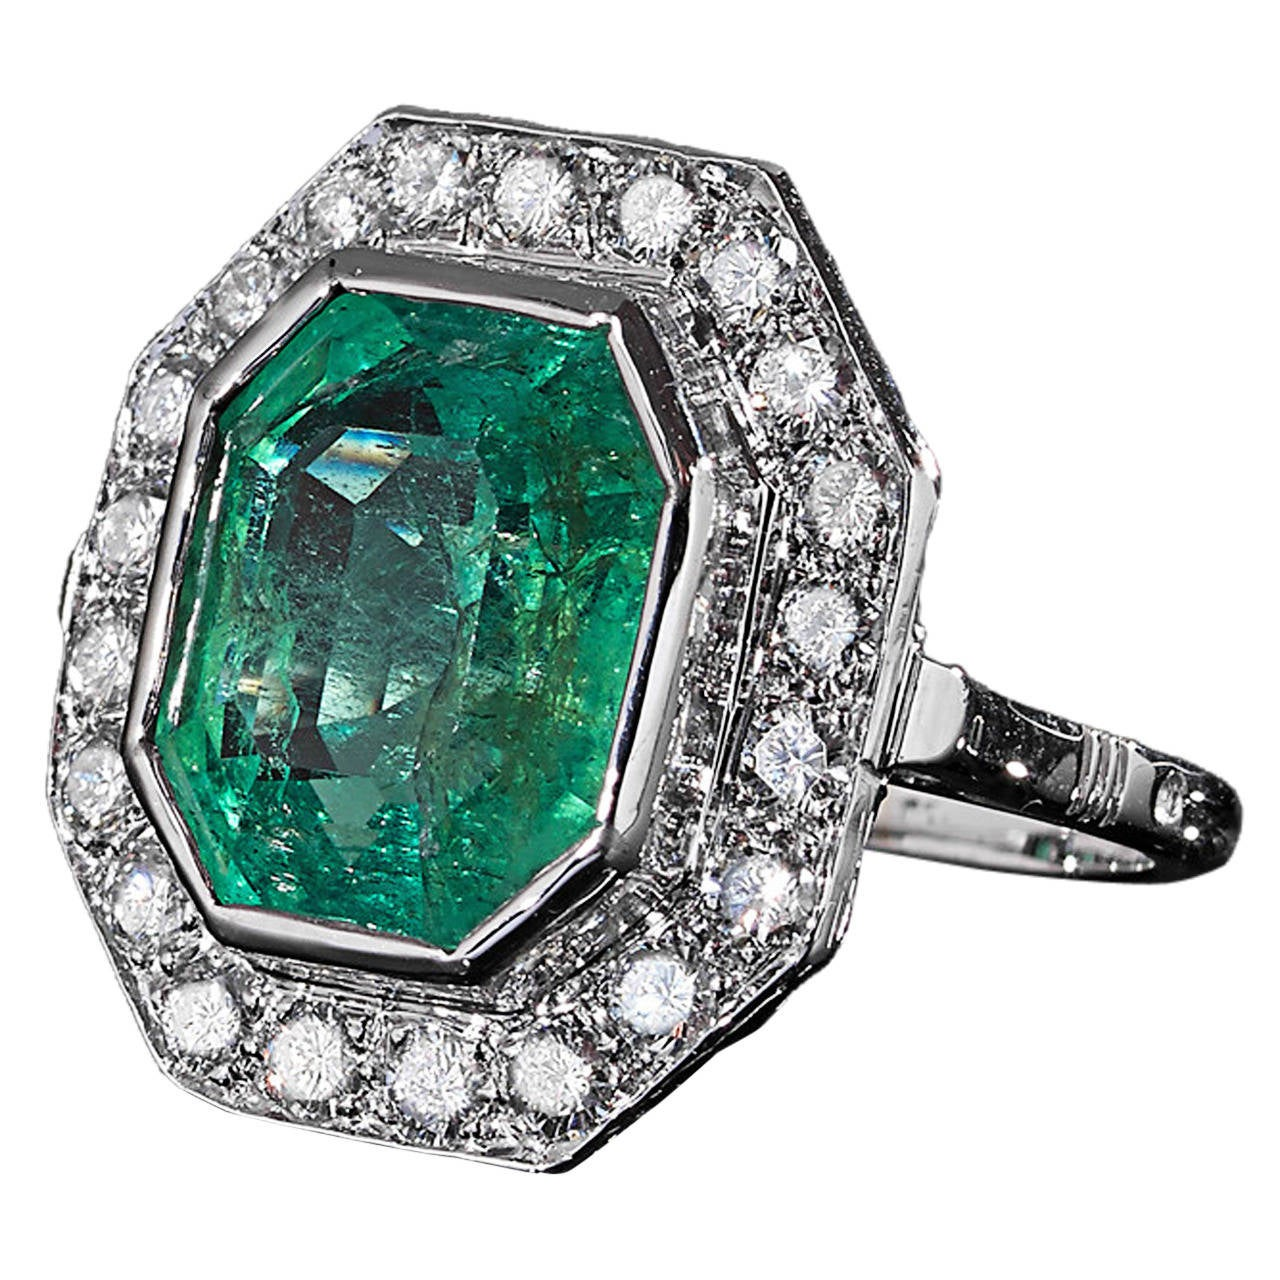 1930s Emerald Diamond Gold Platinum Ring 1